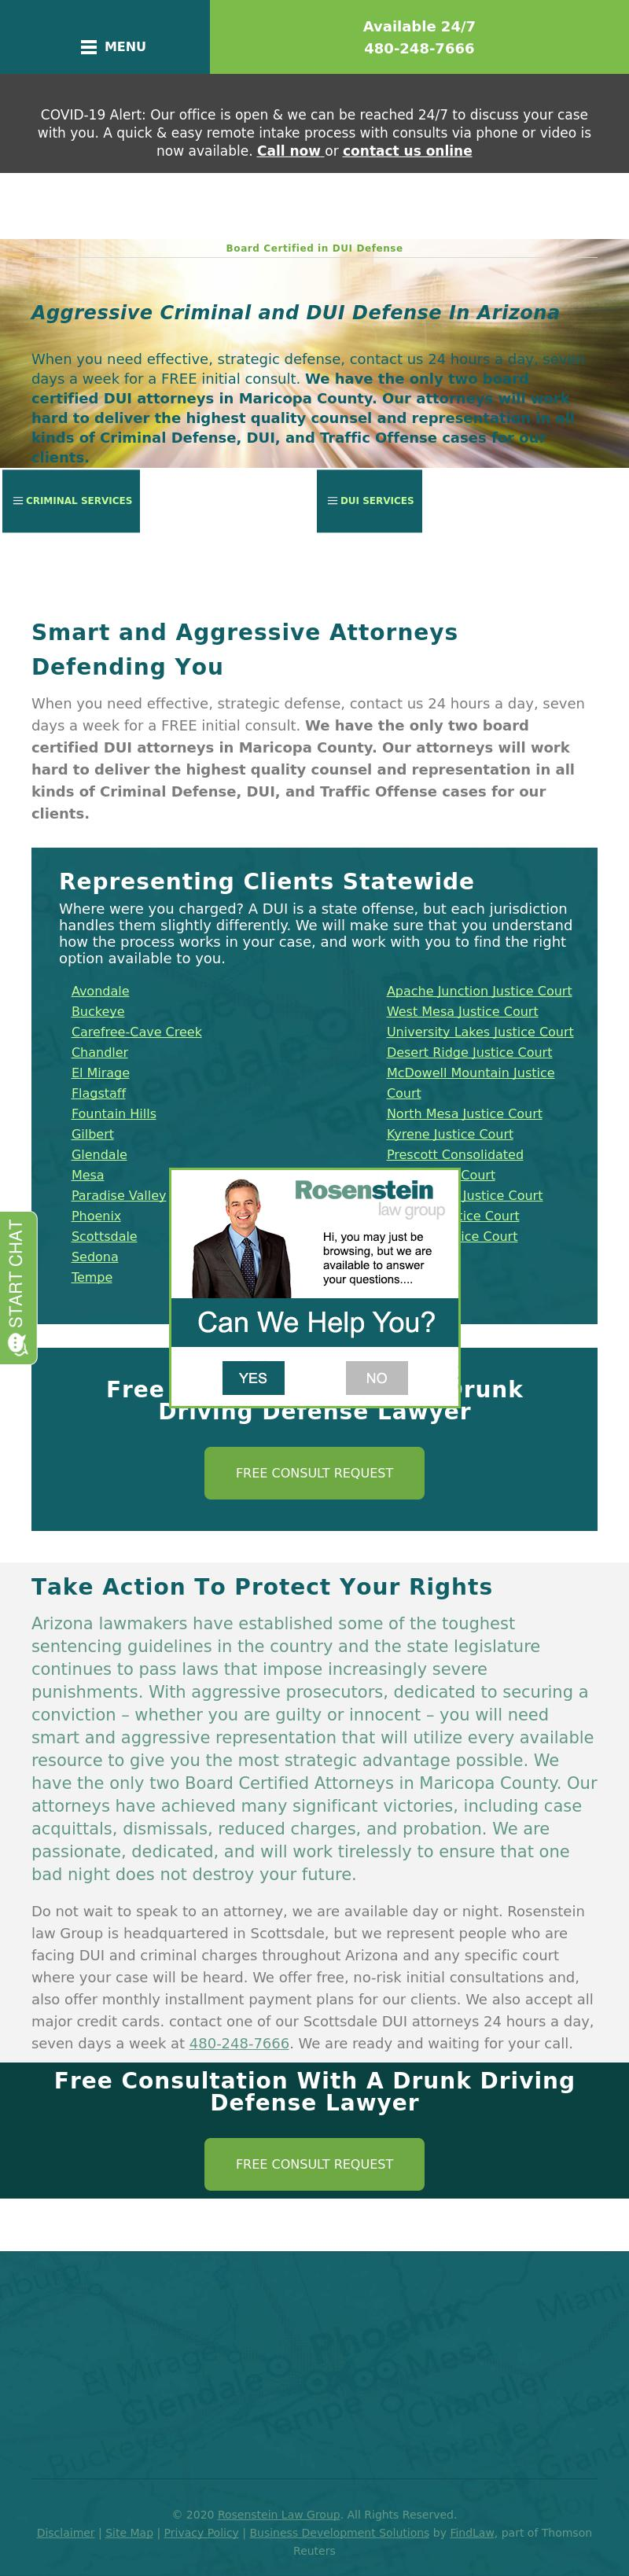 Rosenstein Law Group - Mesa AZ Lawyers